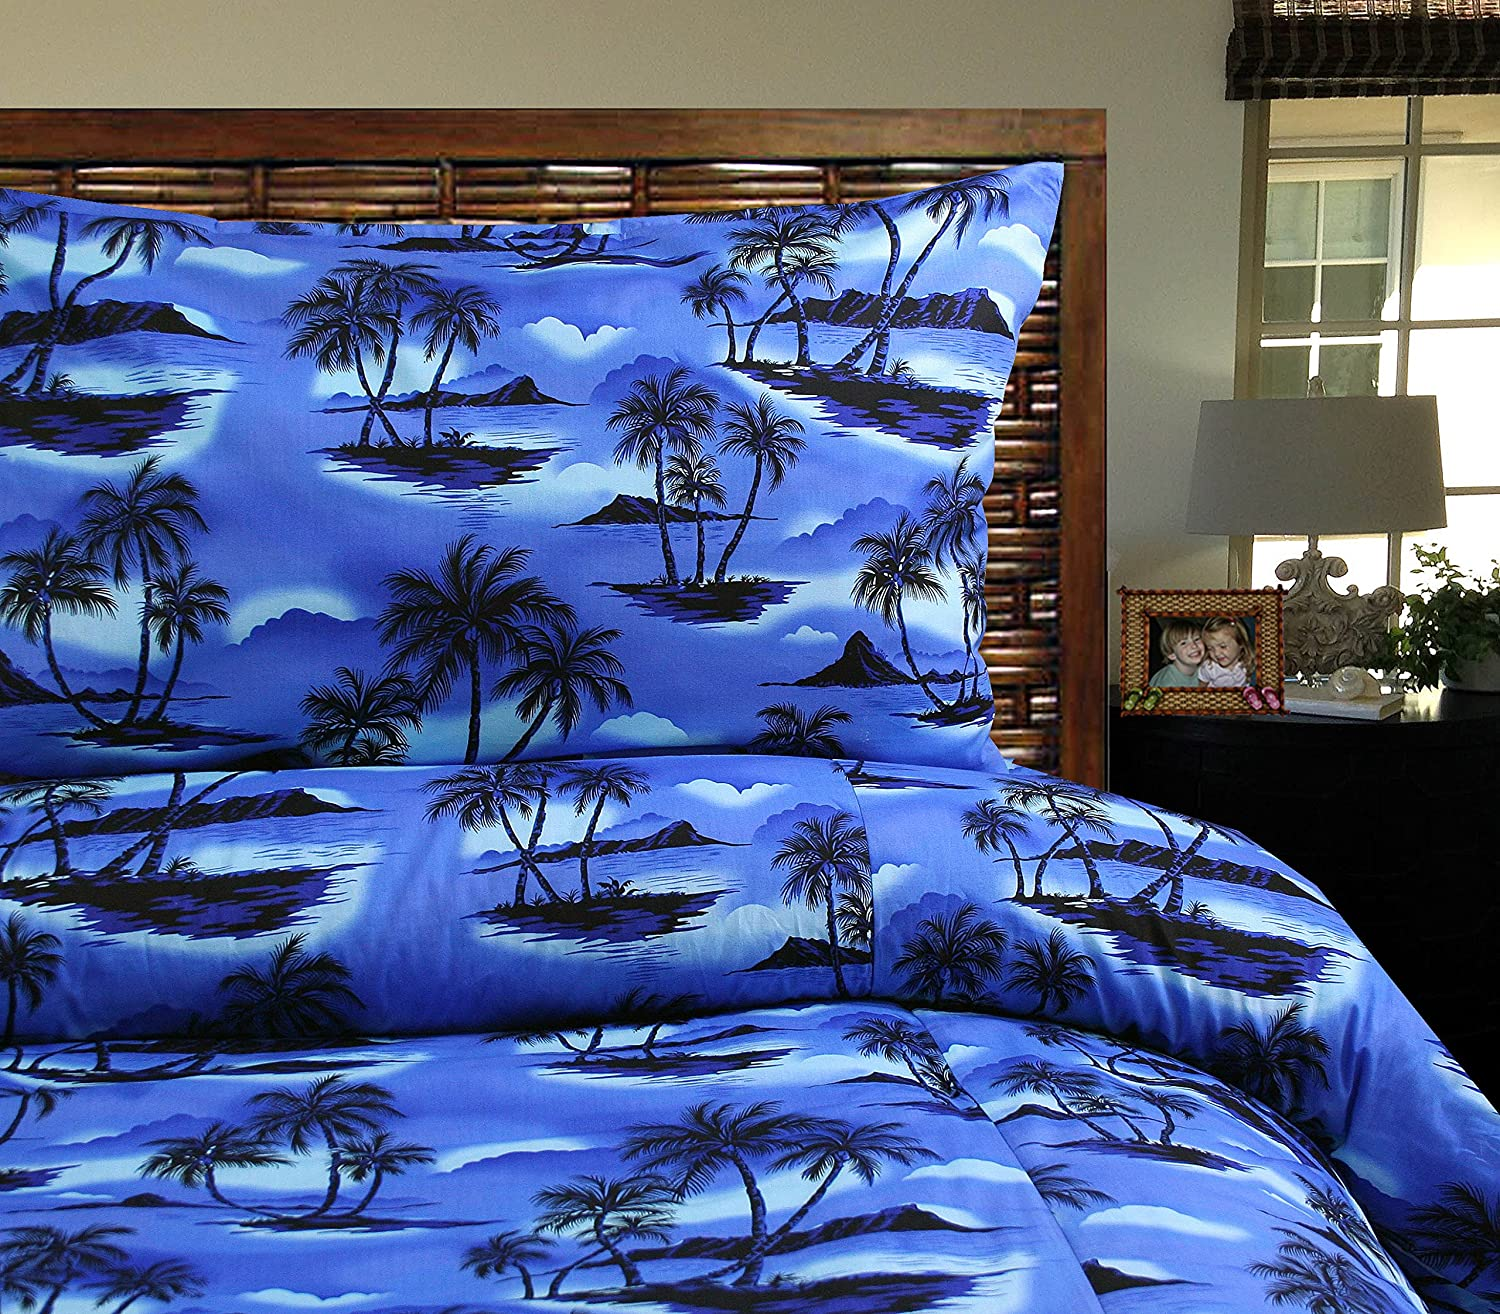 Island Bedding Duvet Cover Set - Island Nights Duvet Cover with Tropical Pillowcases (Queen / Full)